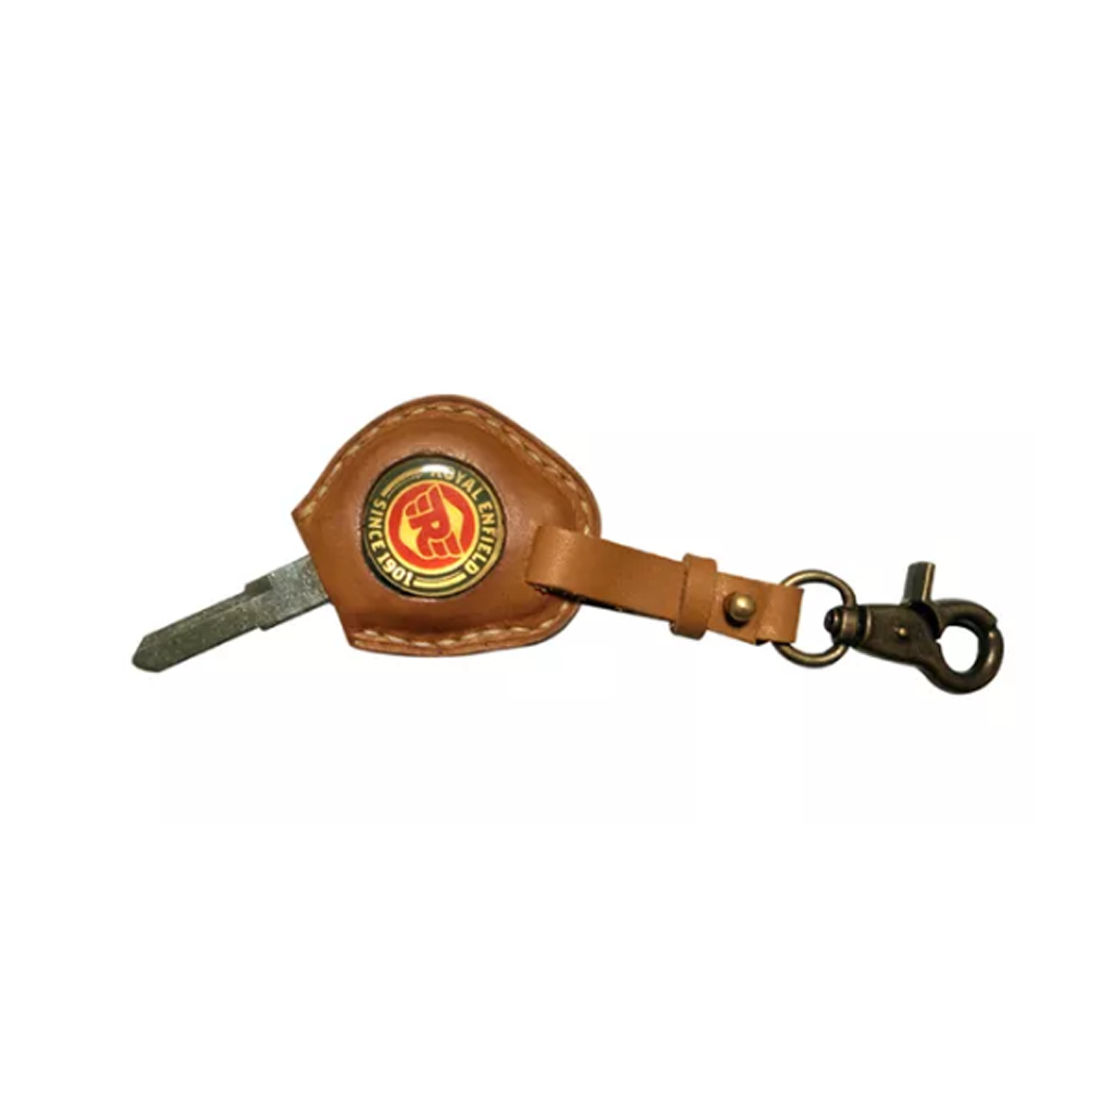 Speedy Riders R/H Cut Blank Key With Leather Cover Tan Color Keychain For  Royal Enfield